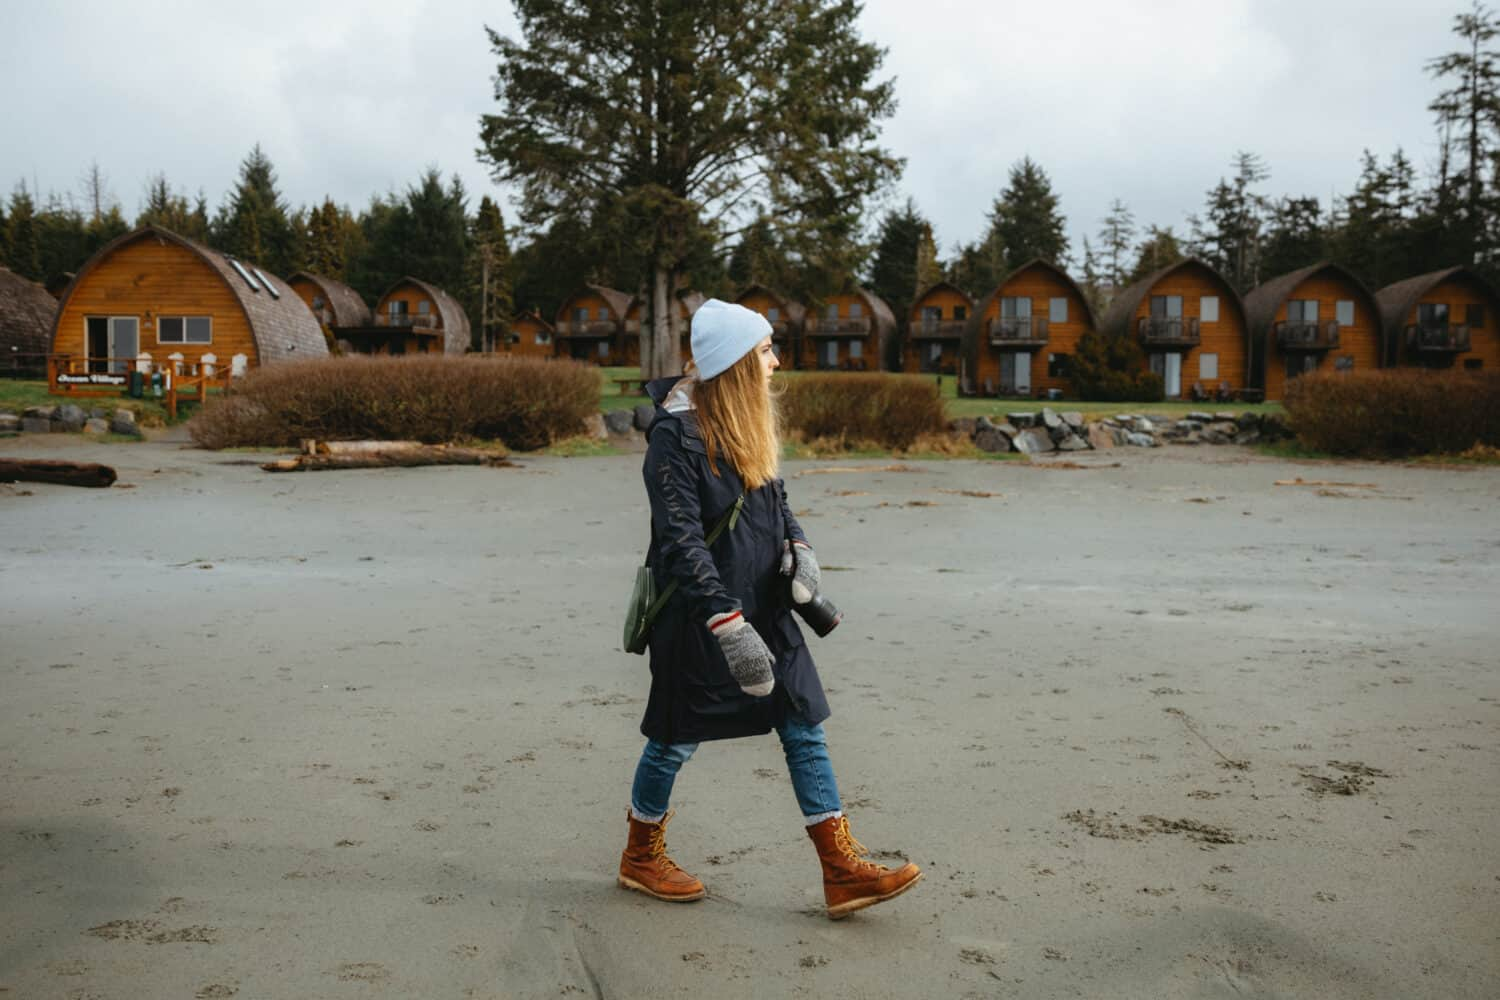 Emily Mandagie walking on beaches in Tofino, BC